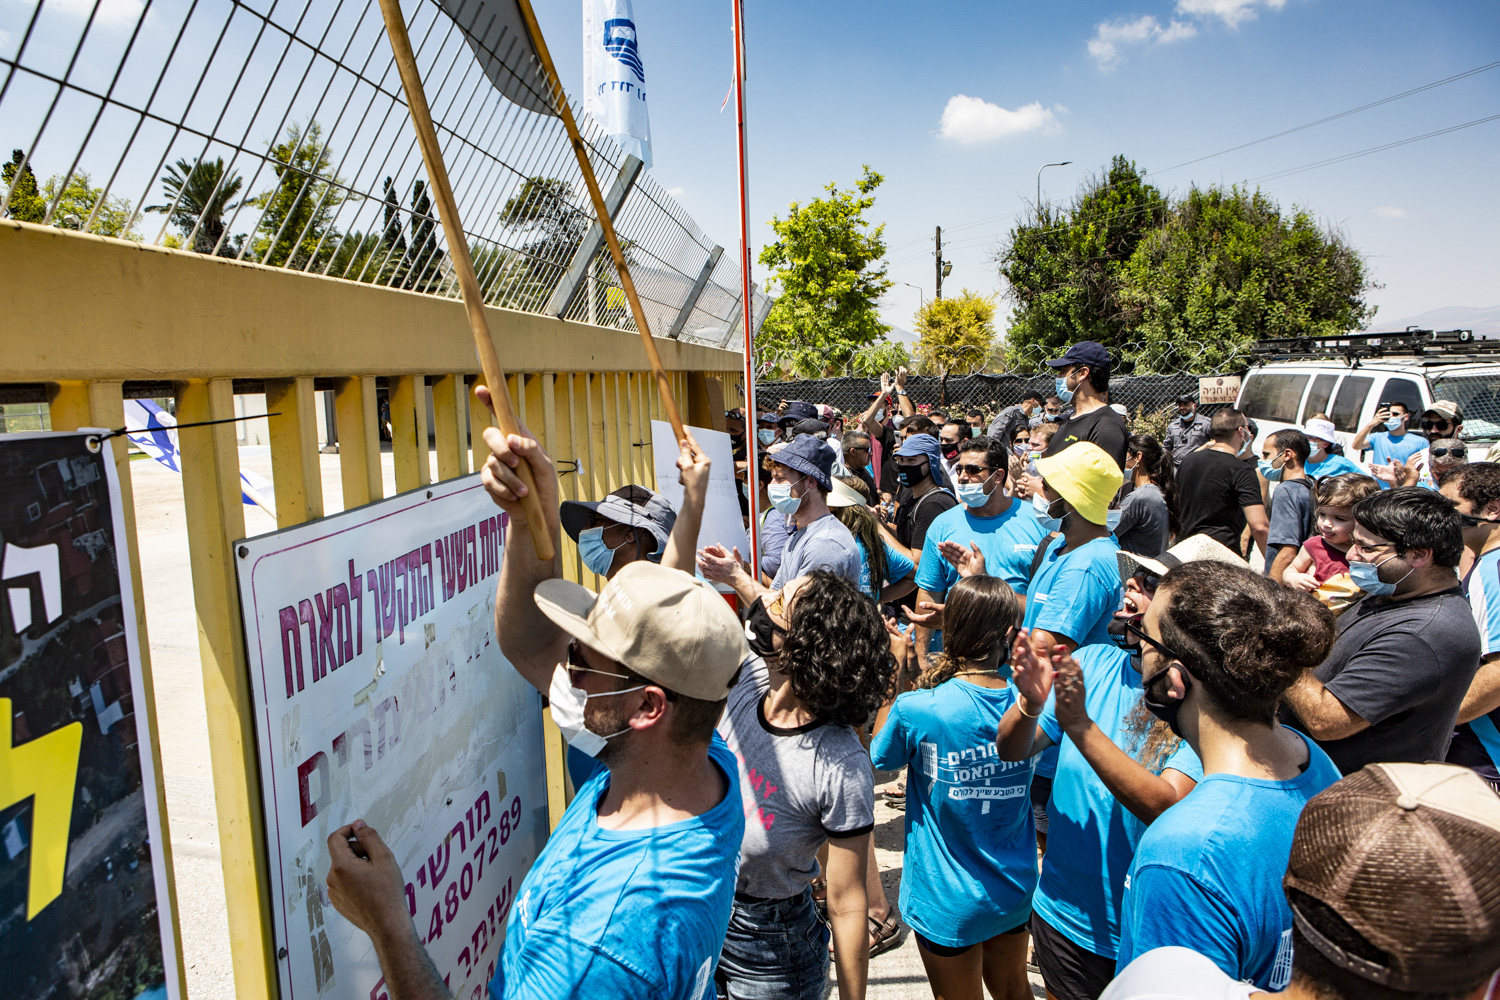 Activists and supporters demonstrate outside the main gate of Nir David calling on the kibbutz to allow free public access to the Asi River on August 14, 2020. (Photo by Mati Milstein)